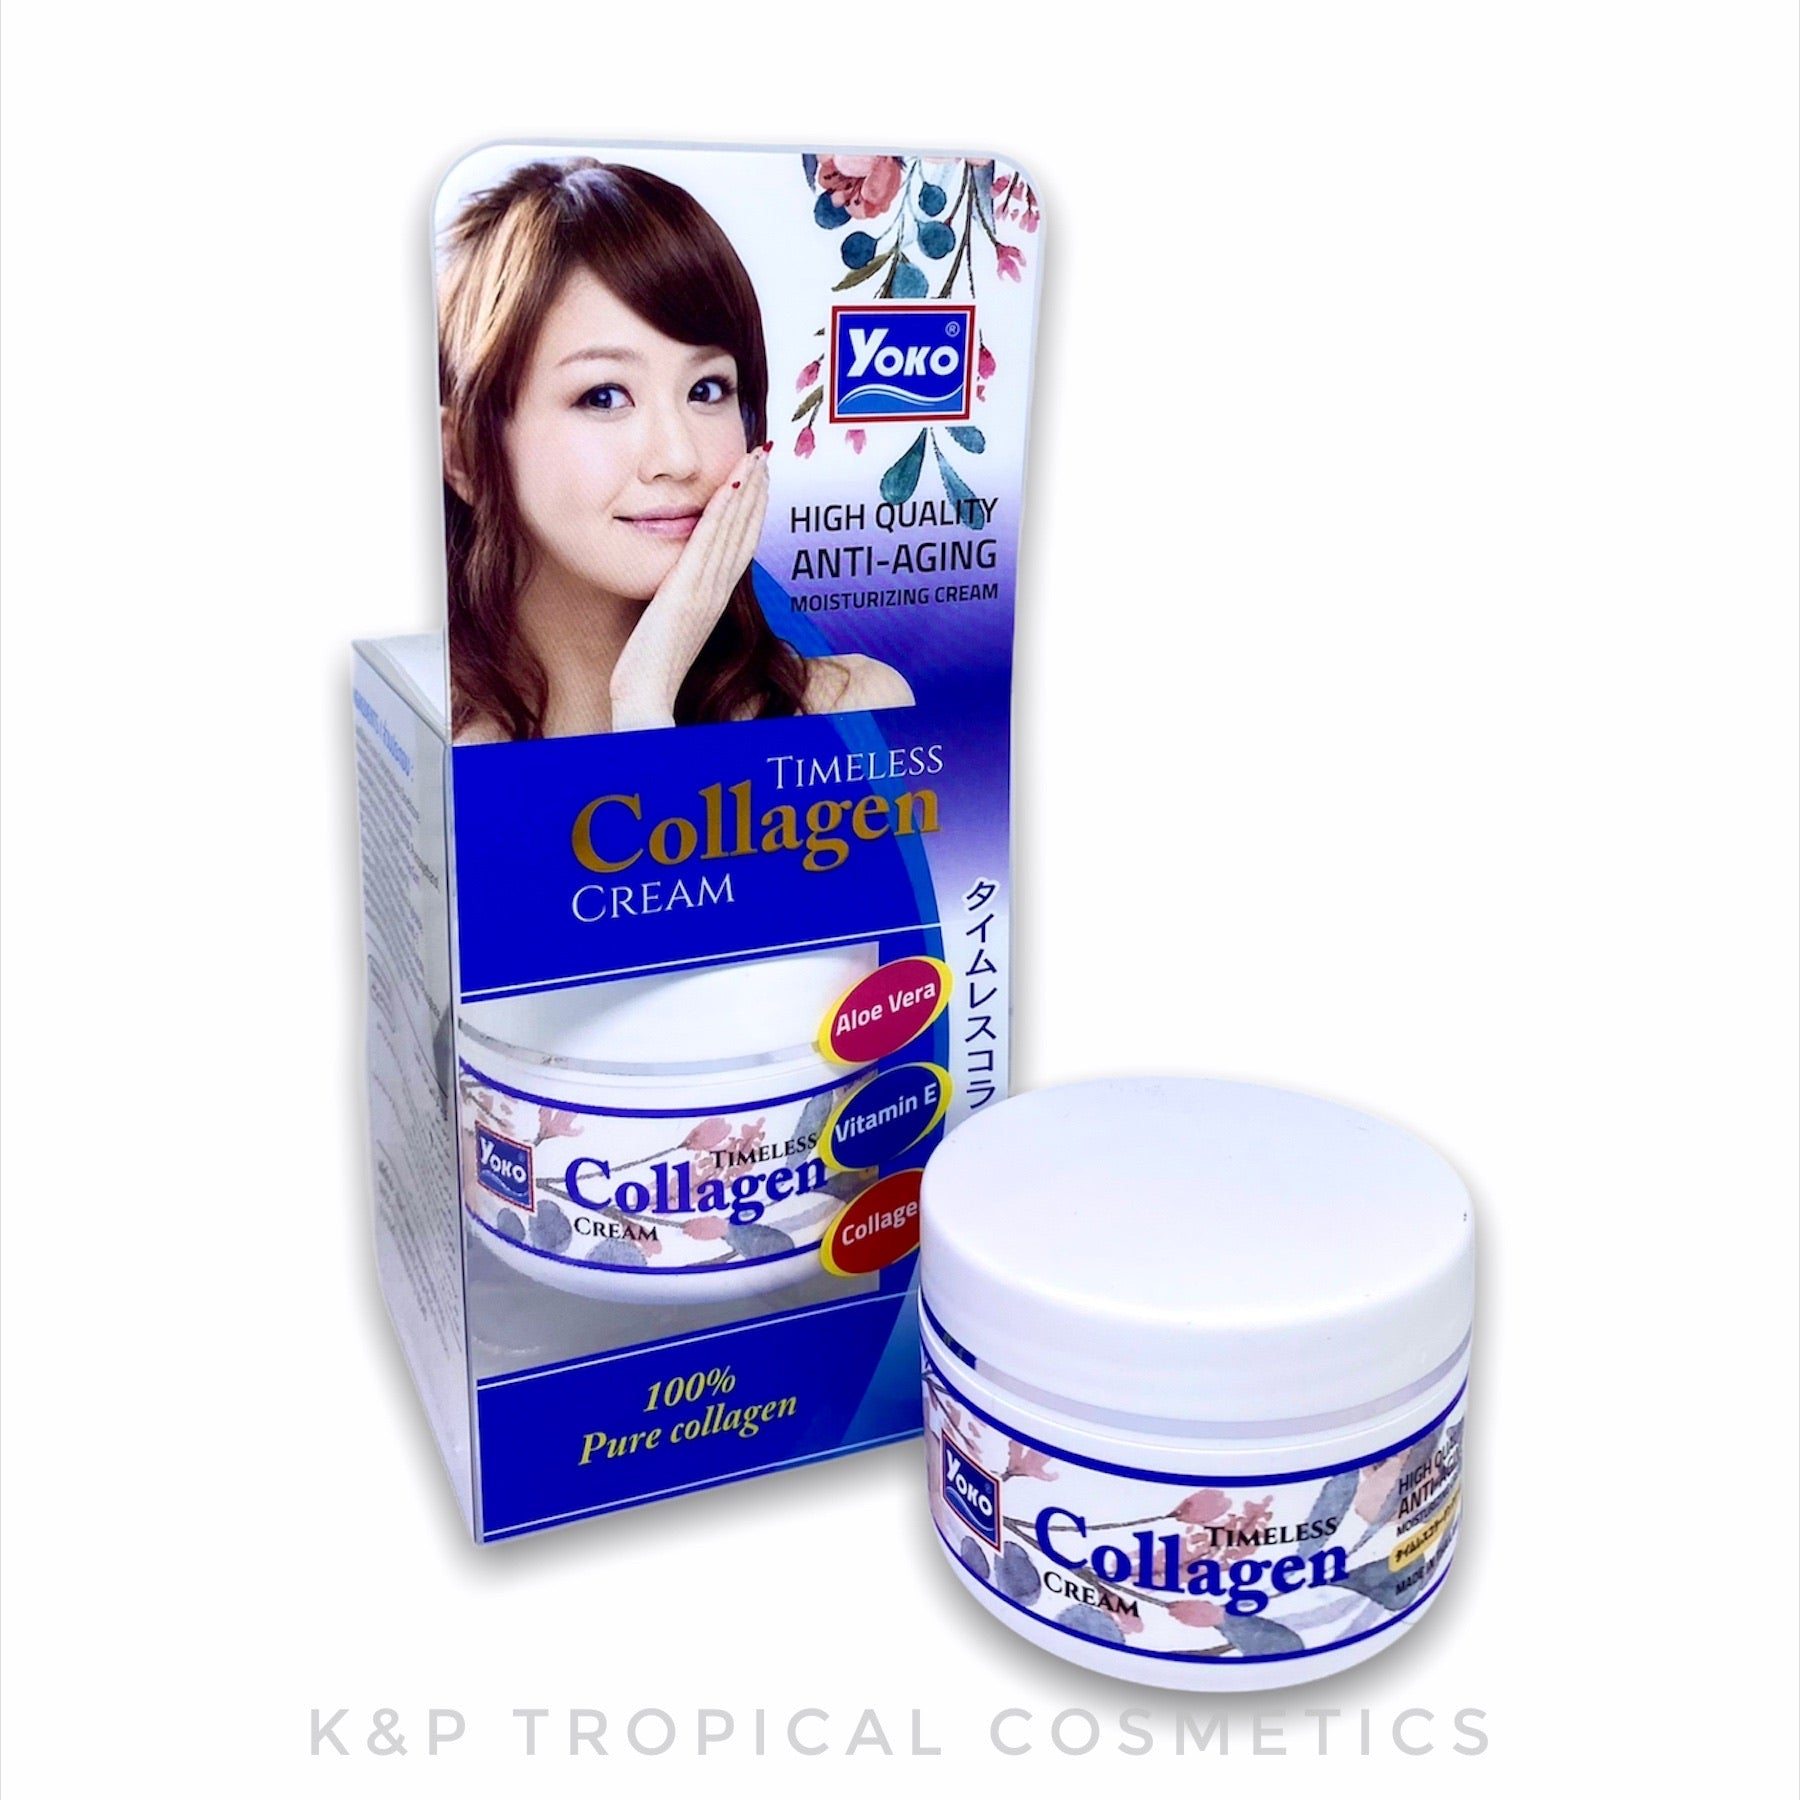 Siam Yoko Timeless Collagen Cream 50 ml., Коллагеновый крем для лица 50 мл.